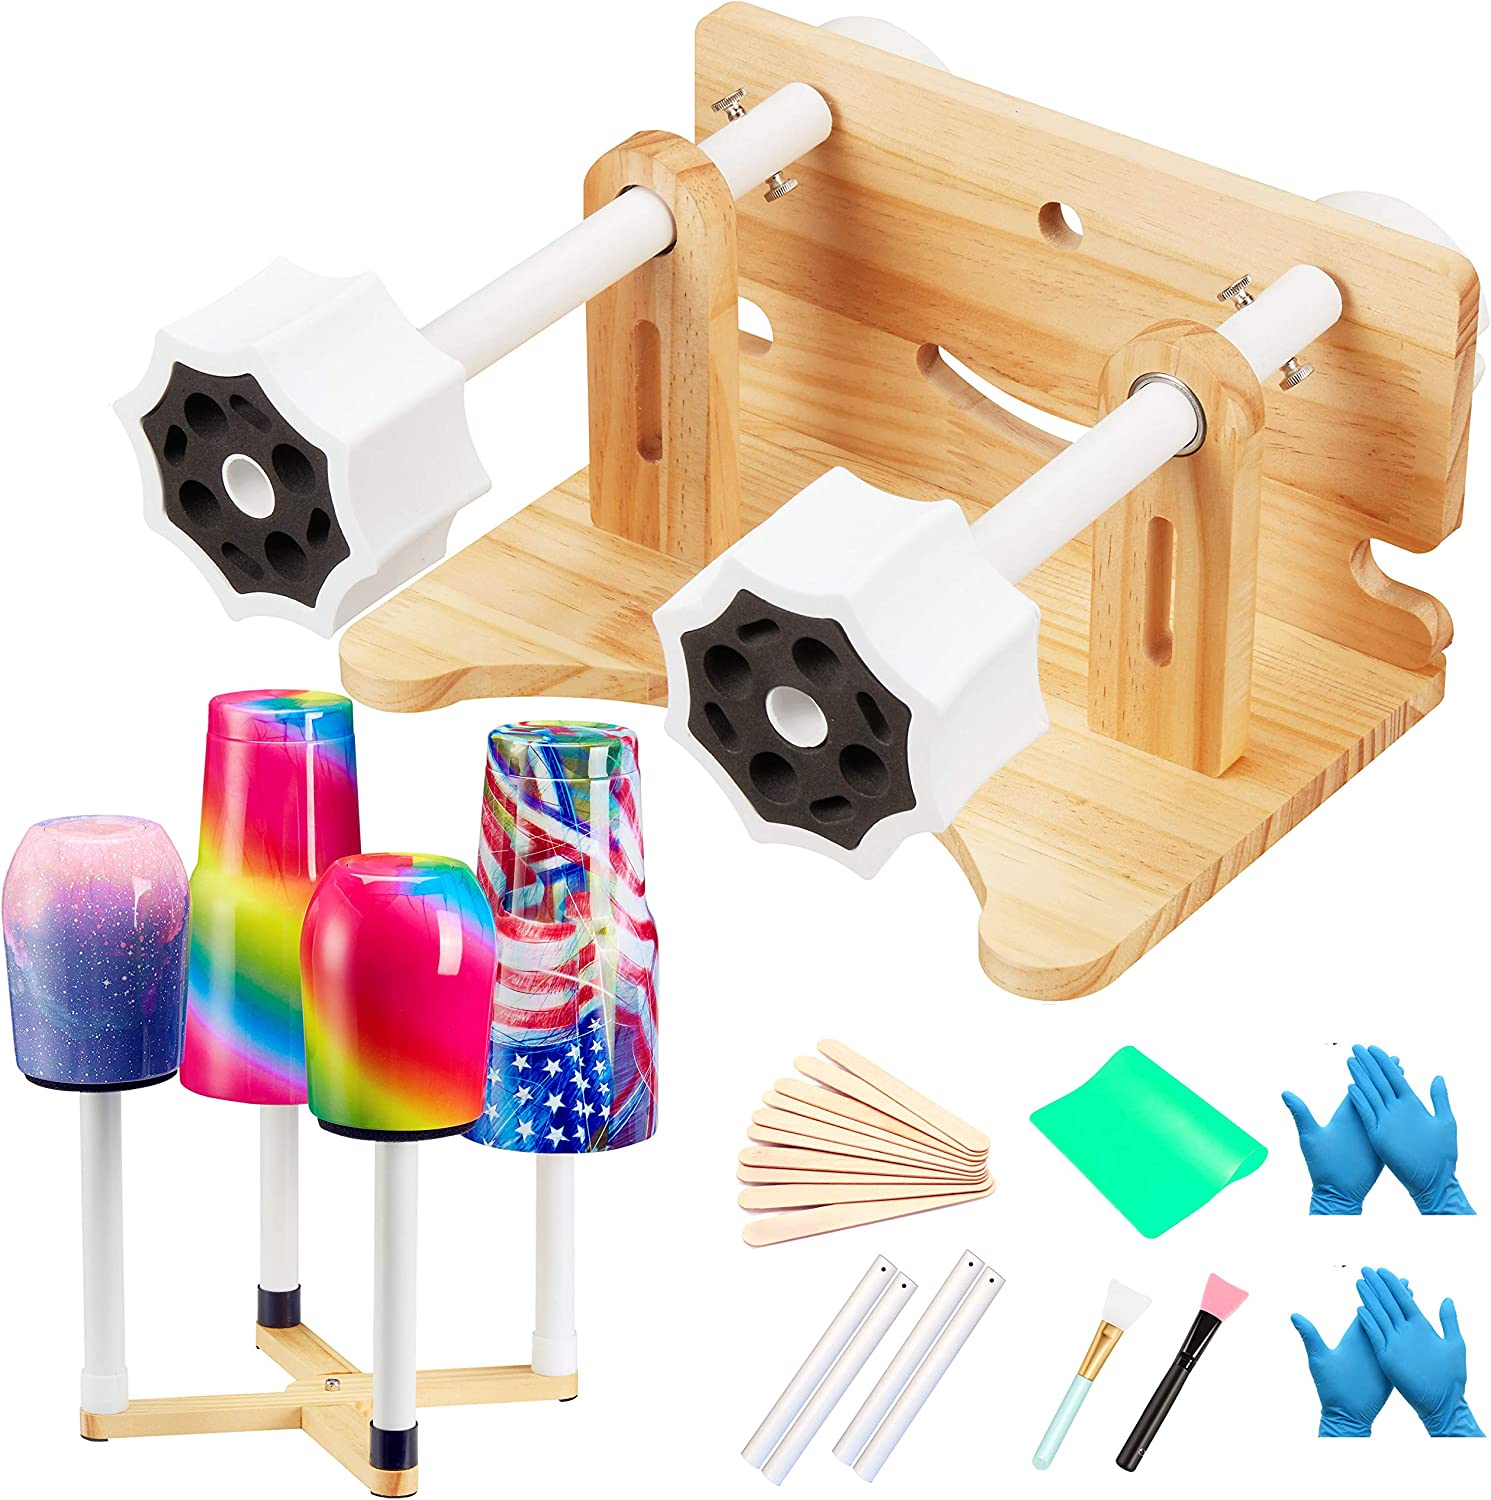 Cup Turner with Silent Motor /& Safety Swith Cup Spinner with Sufficient Accessories Creative Cuptisserie/for DIY Glitter Epoxy Resin Tumblers Crafts Wooden Tumbler Spinner Machine Kit